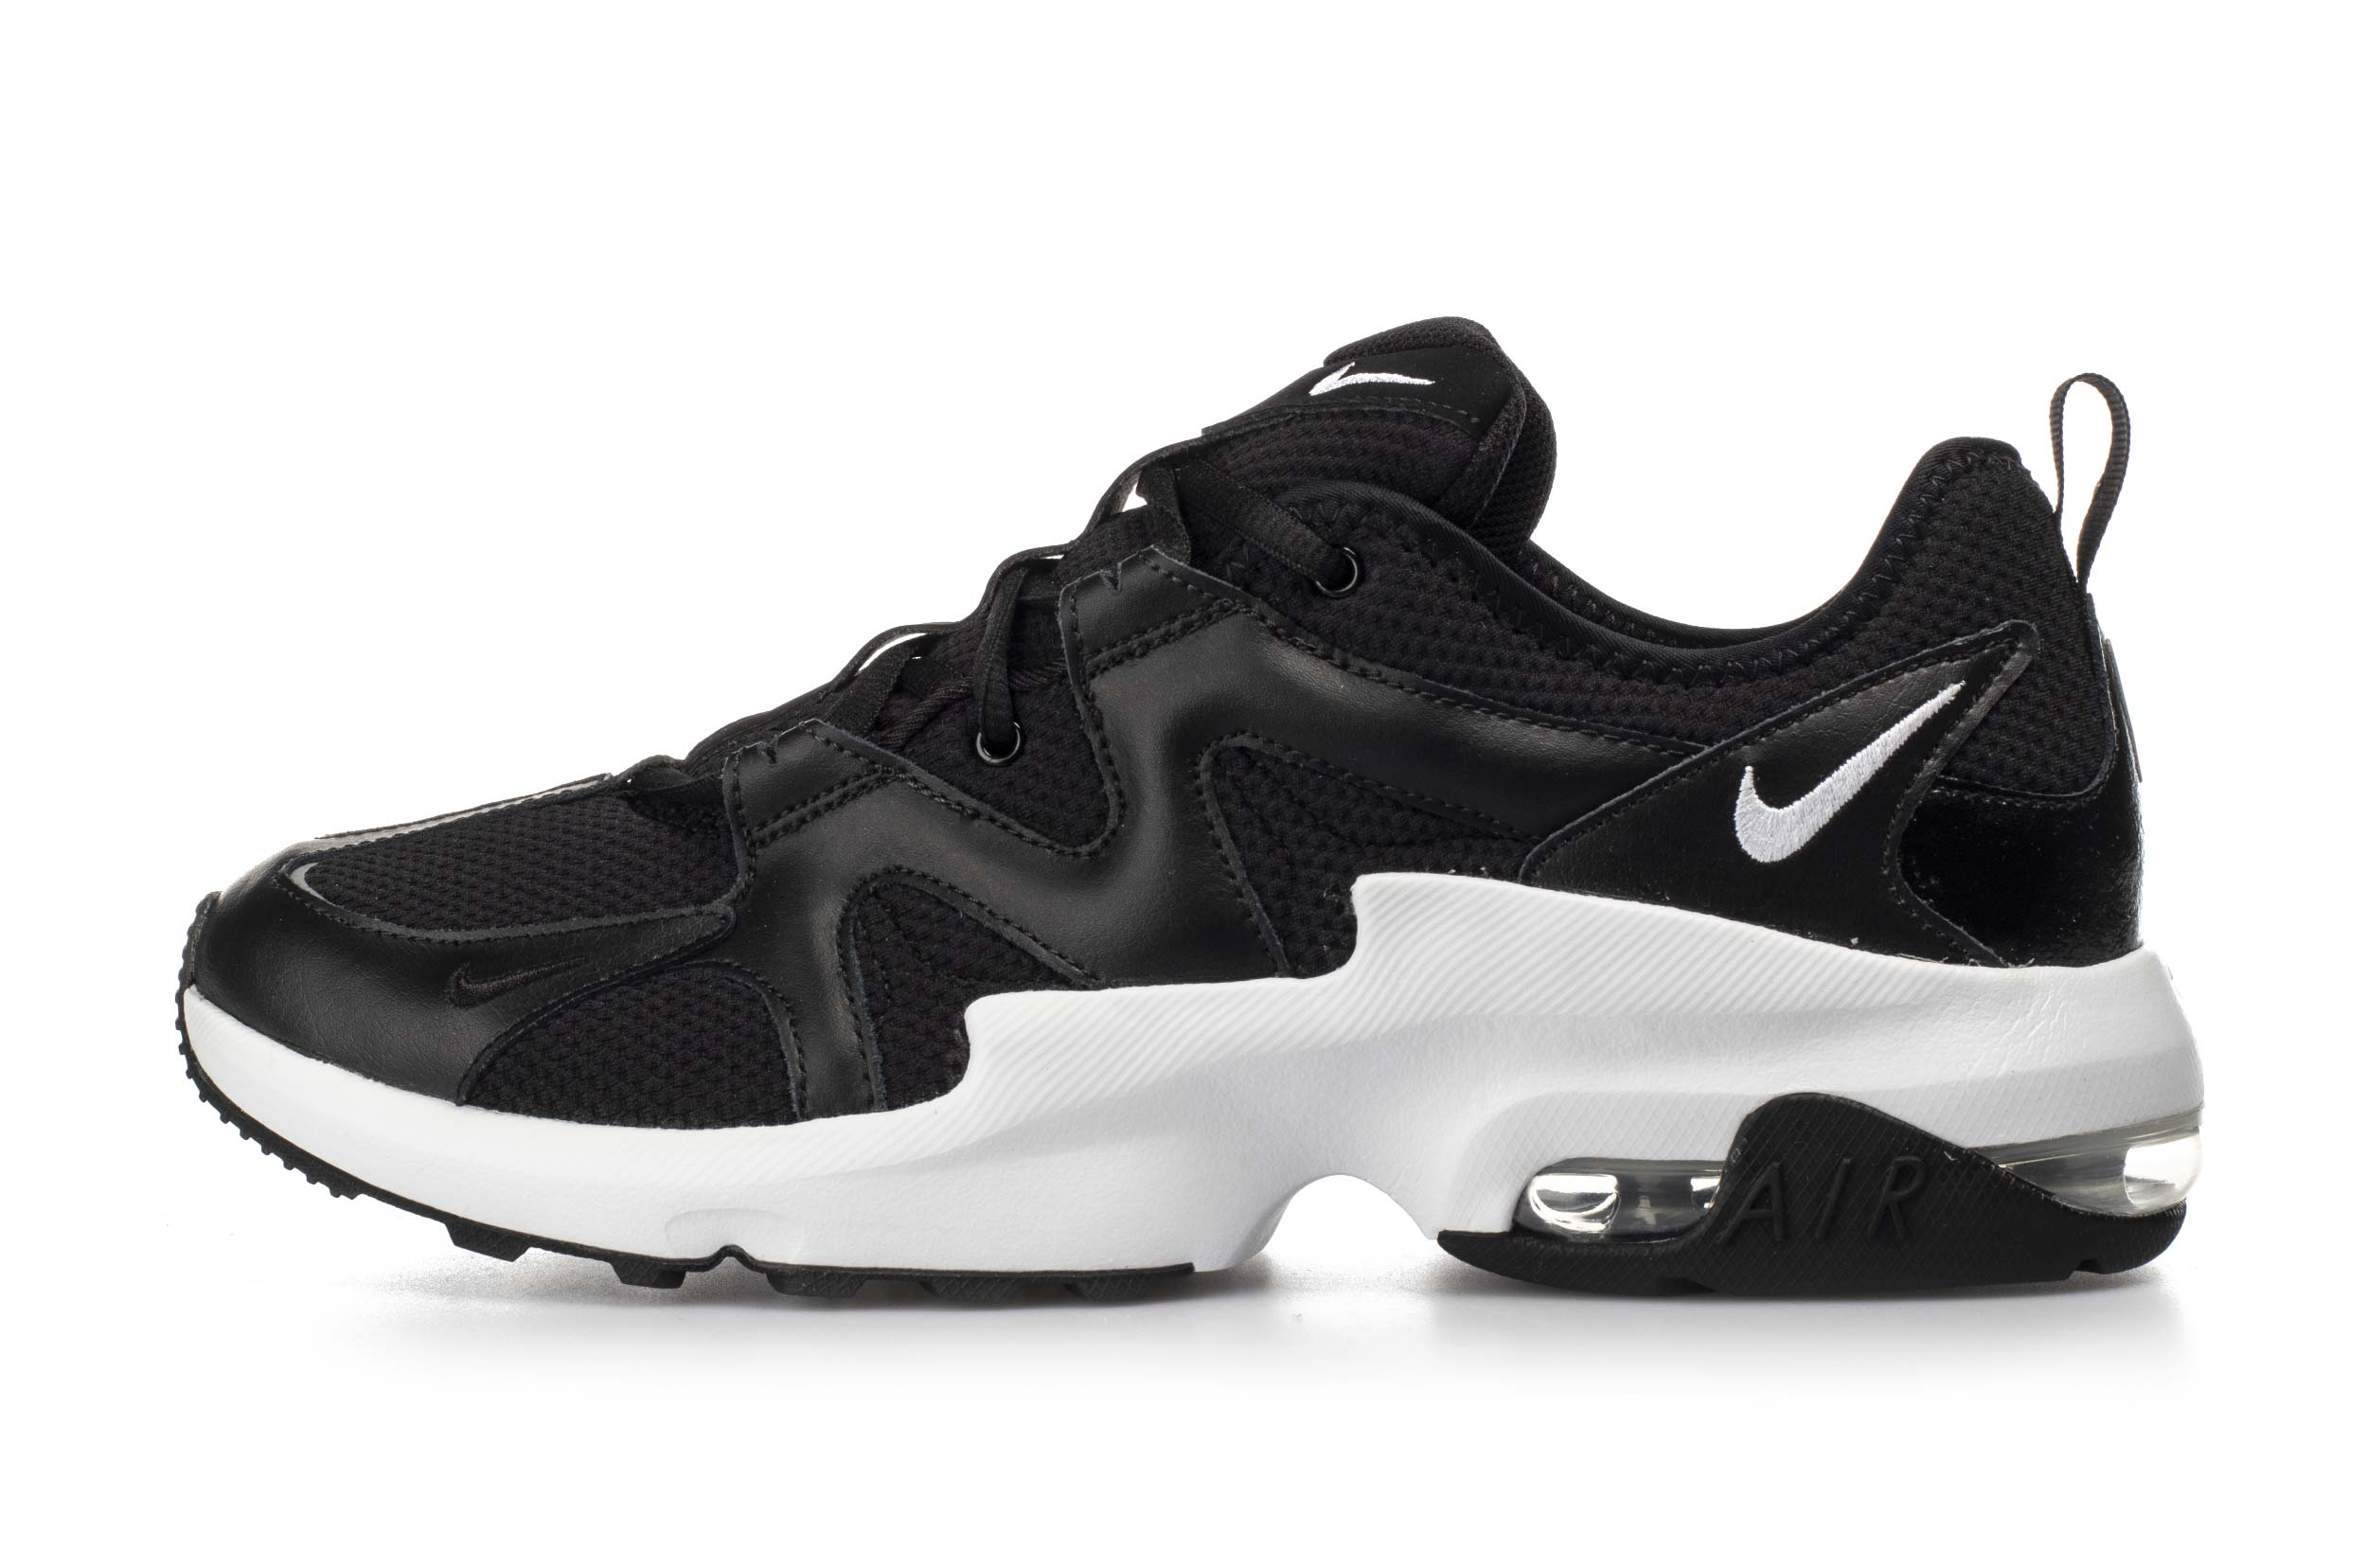 NIKE AIR MAX GRAVITON AT4525-001 Μαύρο